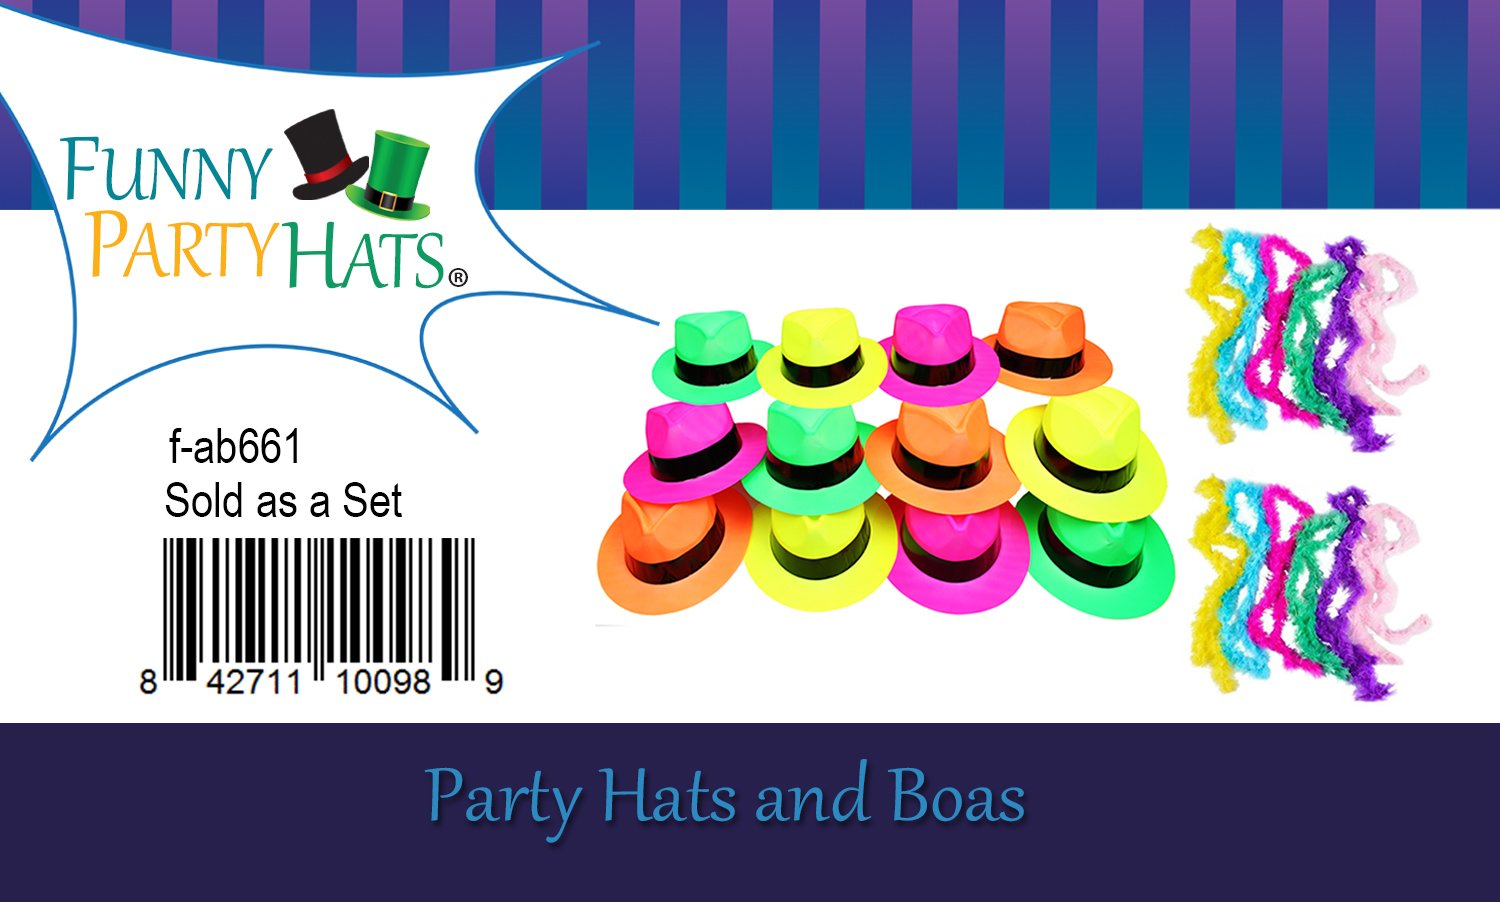 Neon Party Supplies - 80's Style, Neon Gangster Hats, Fedora Party Hats W/Neon Mini Boas - Party Dress Up by Funny Party Hats (Fedora Hats with Mini Boas) by Funny Party Hats